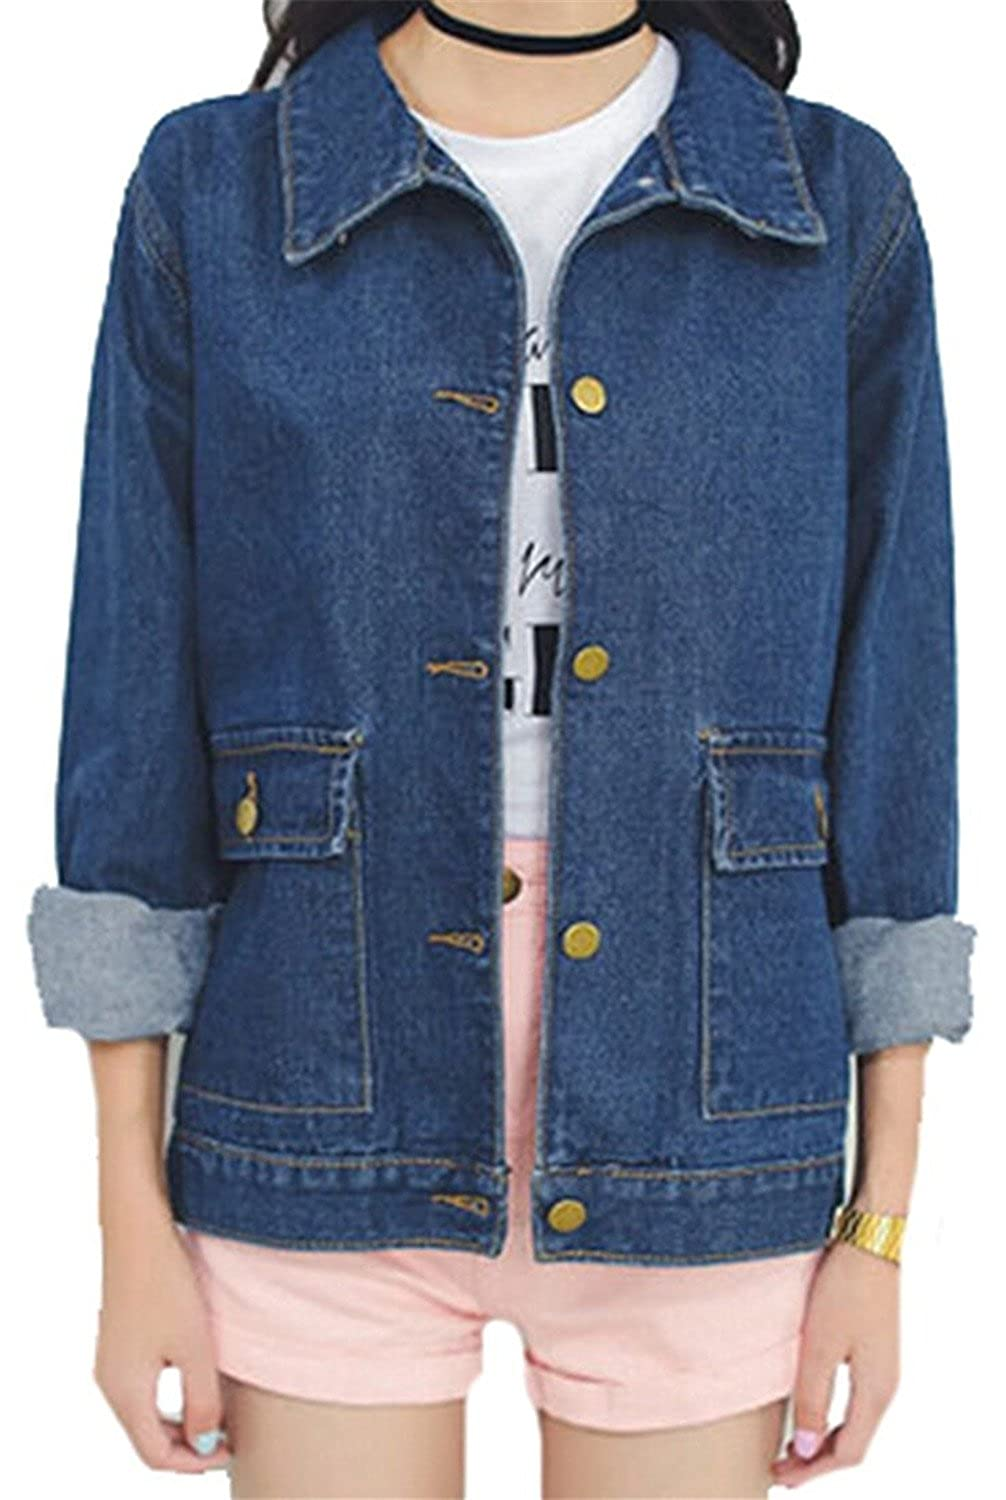 Pilusooou Womens Casual Blue Loose Fit Pockets Denim Jackets